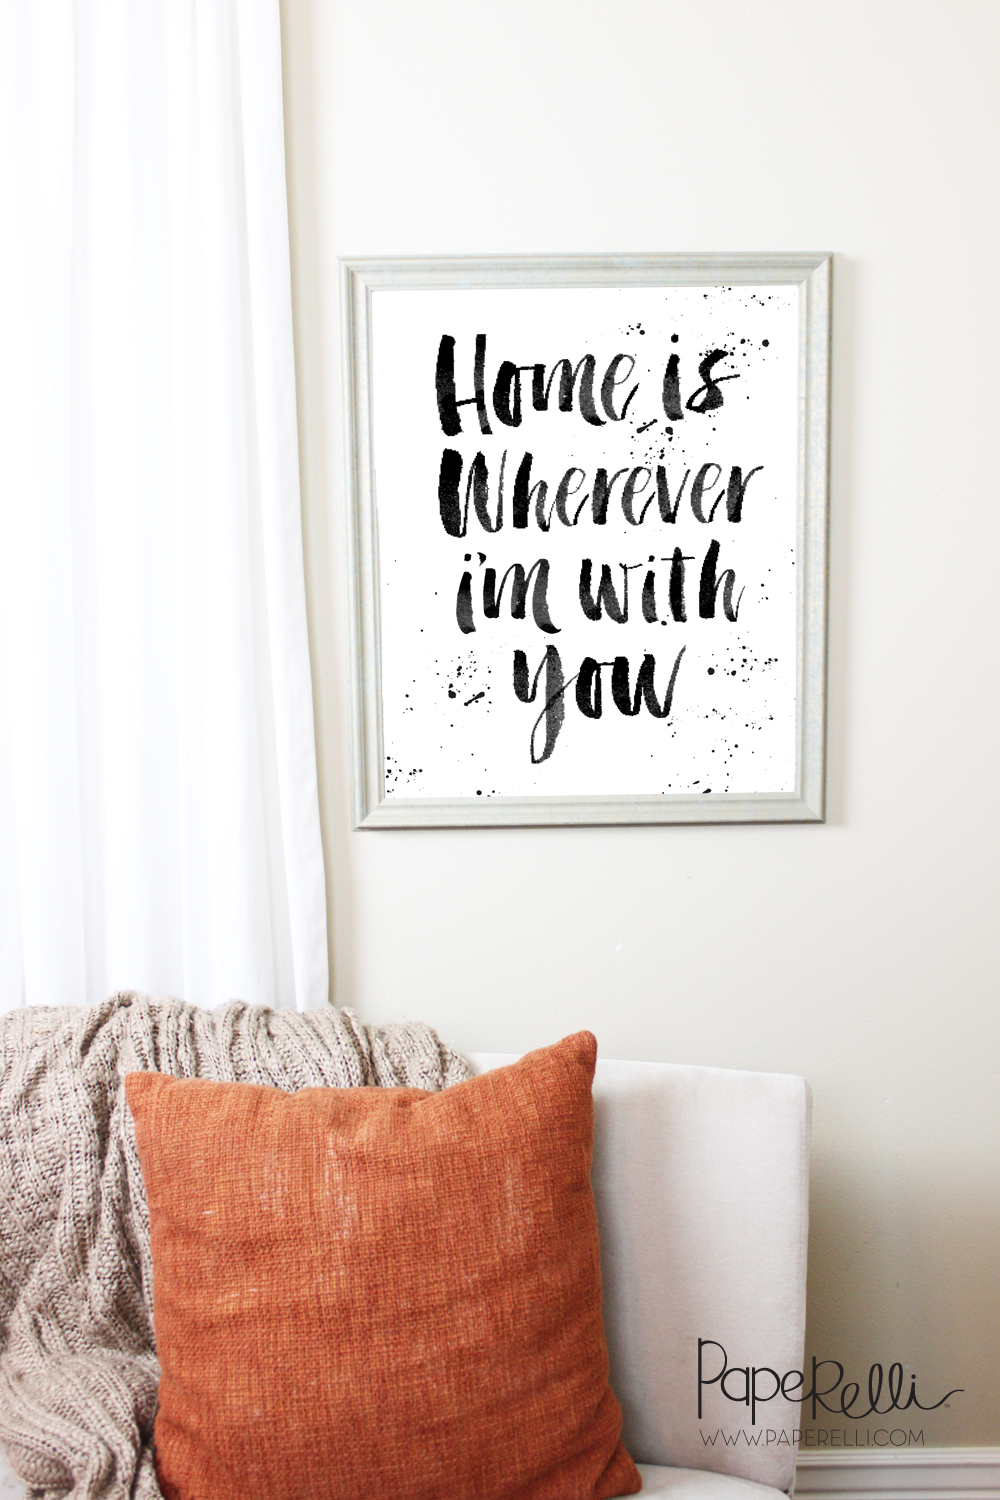 I have rounded up some signs for the Master Bedroom for you to use to help decorate your master bedroom. The best part? They're all free!